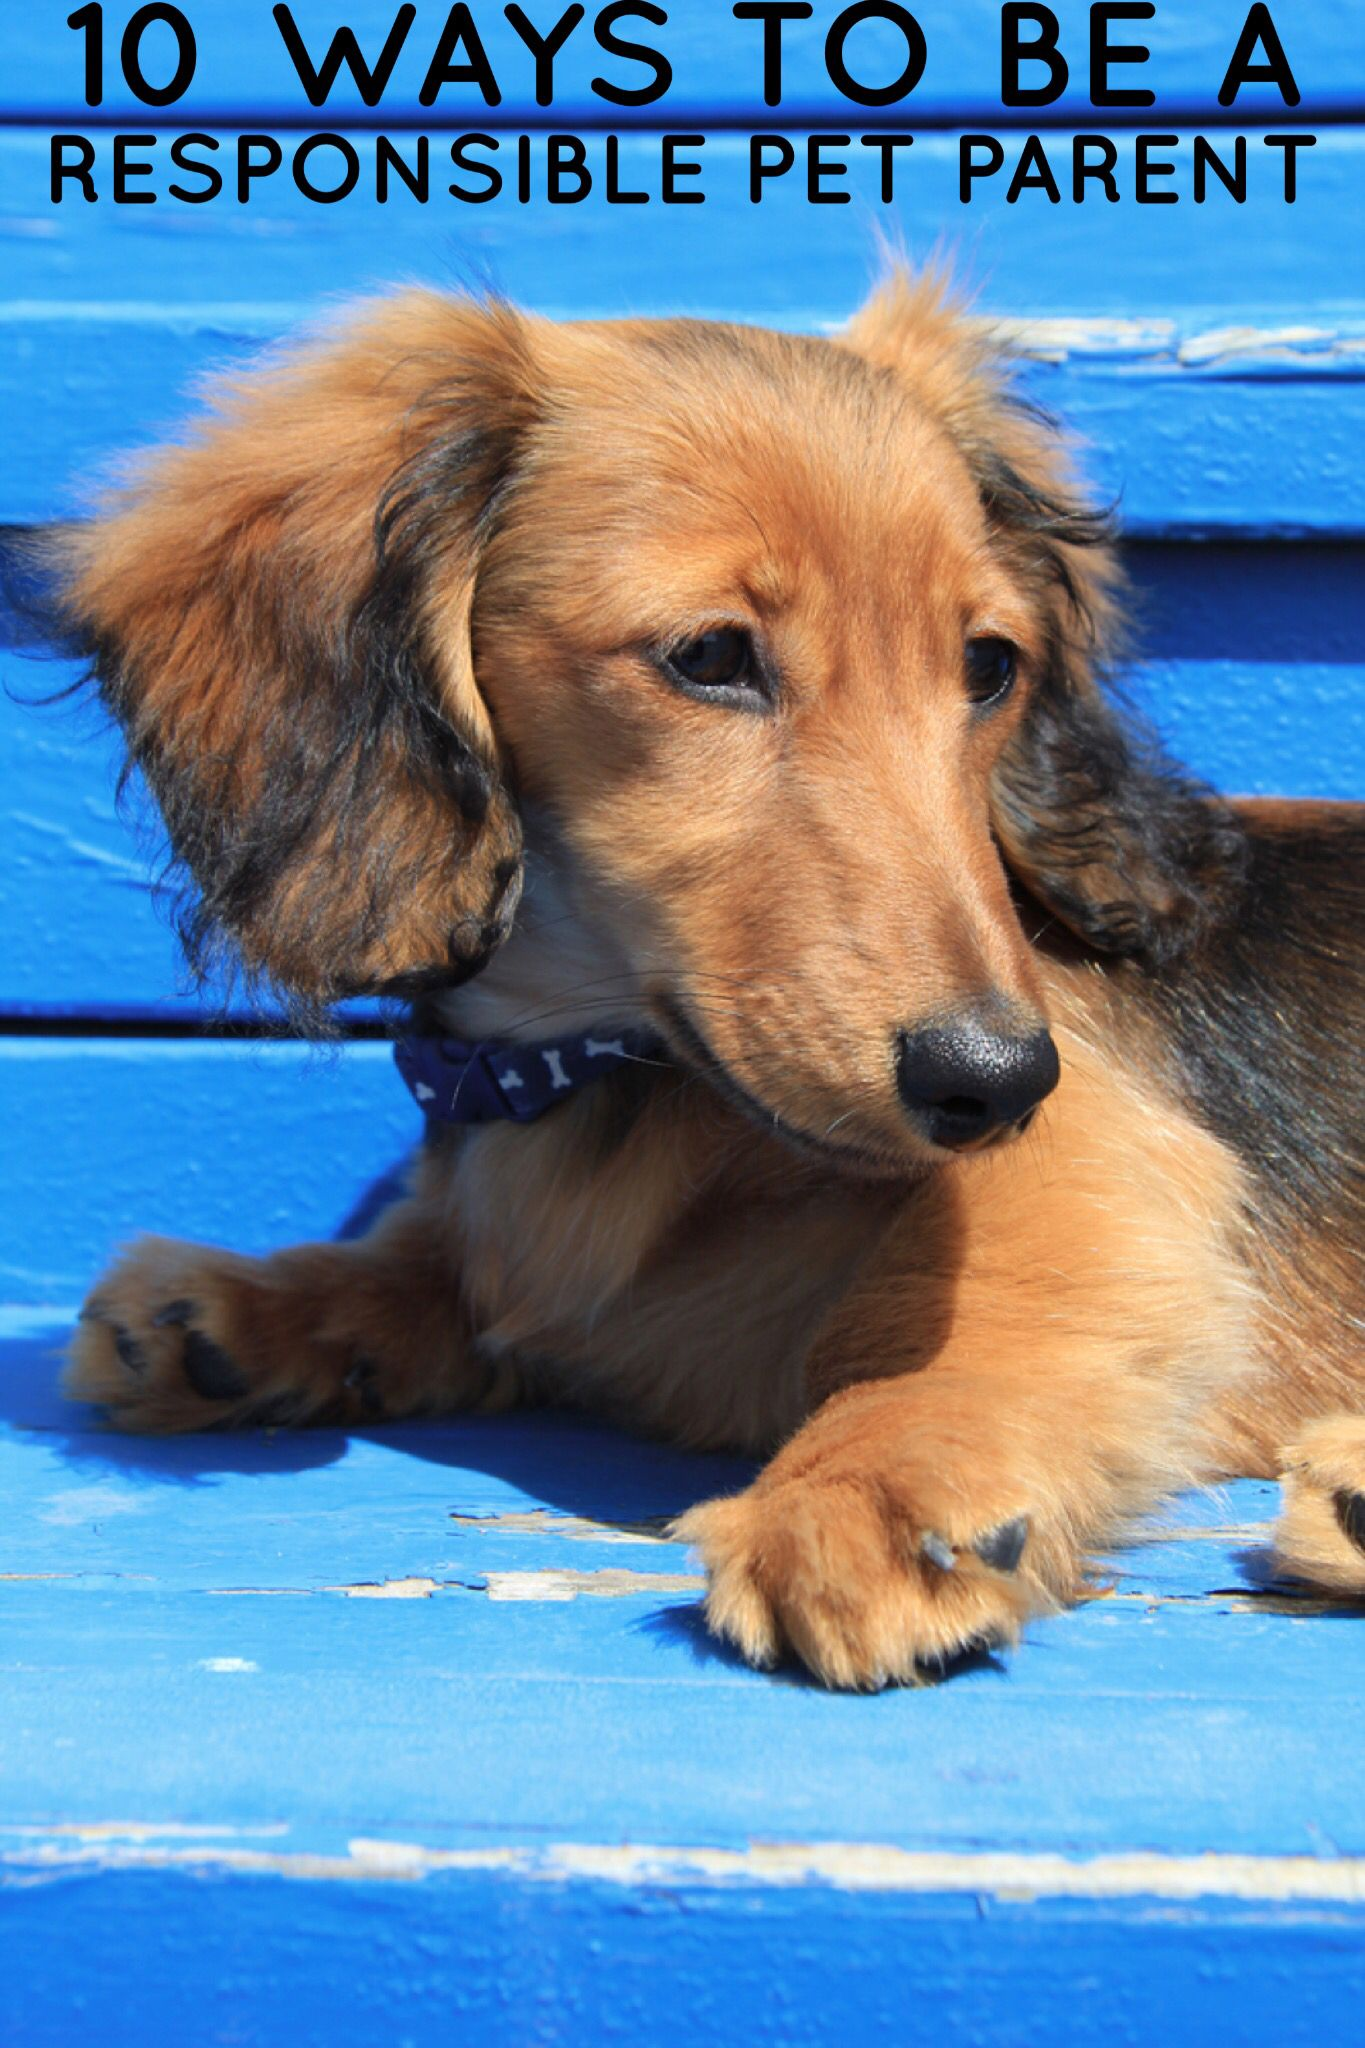 Think you're a great pet parent? Check out this blog to